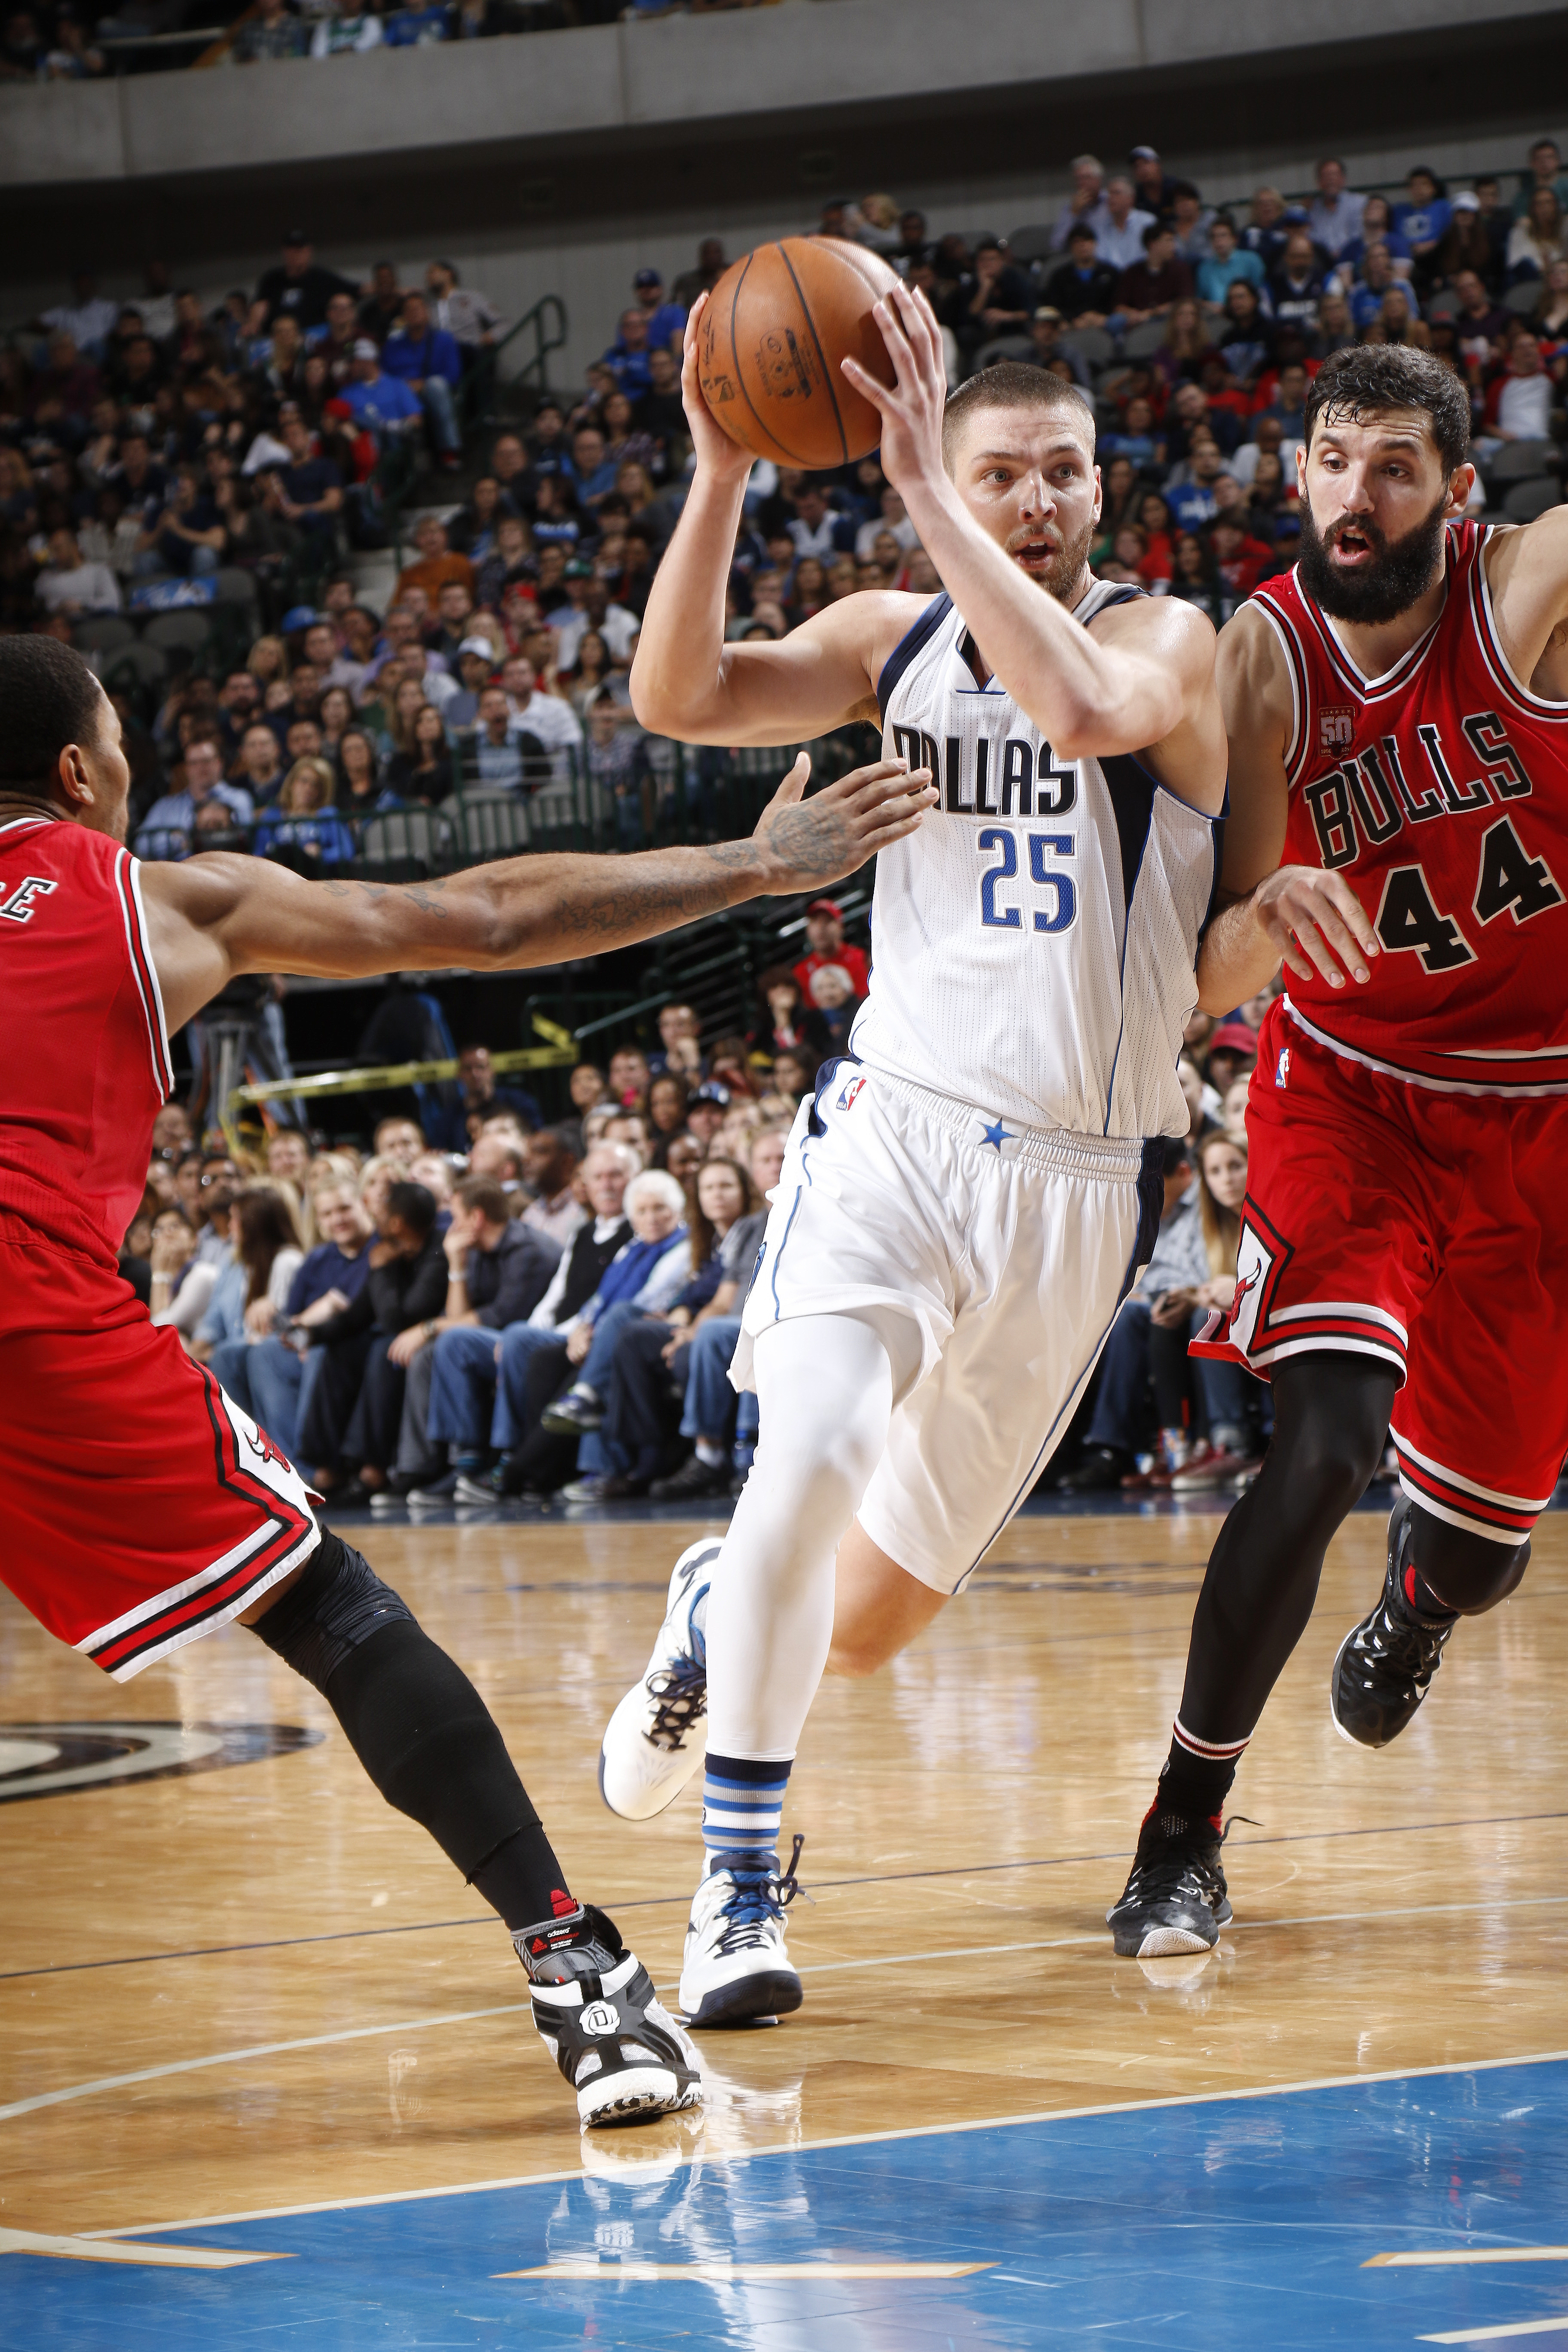 DALLAS, TX - DECEMBER 26:  Chandler Parsons #25 of the Dallas Mavericks drives to the basket during the game against the Chicago Bulls on December 26, 2015 at the American Airlines Center in Dallas, Texas. (Photo by Glenn James/NBAE via Getty Images)